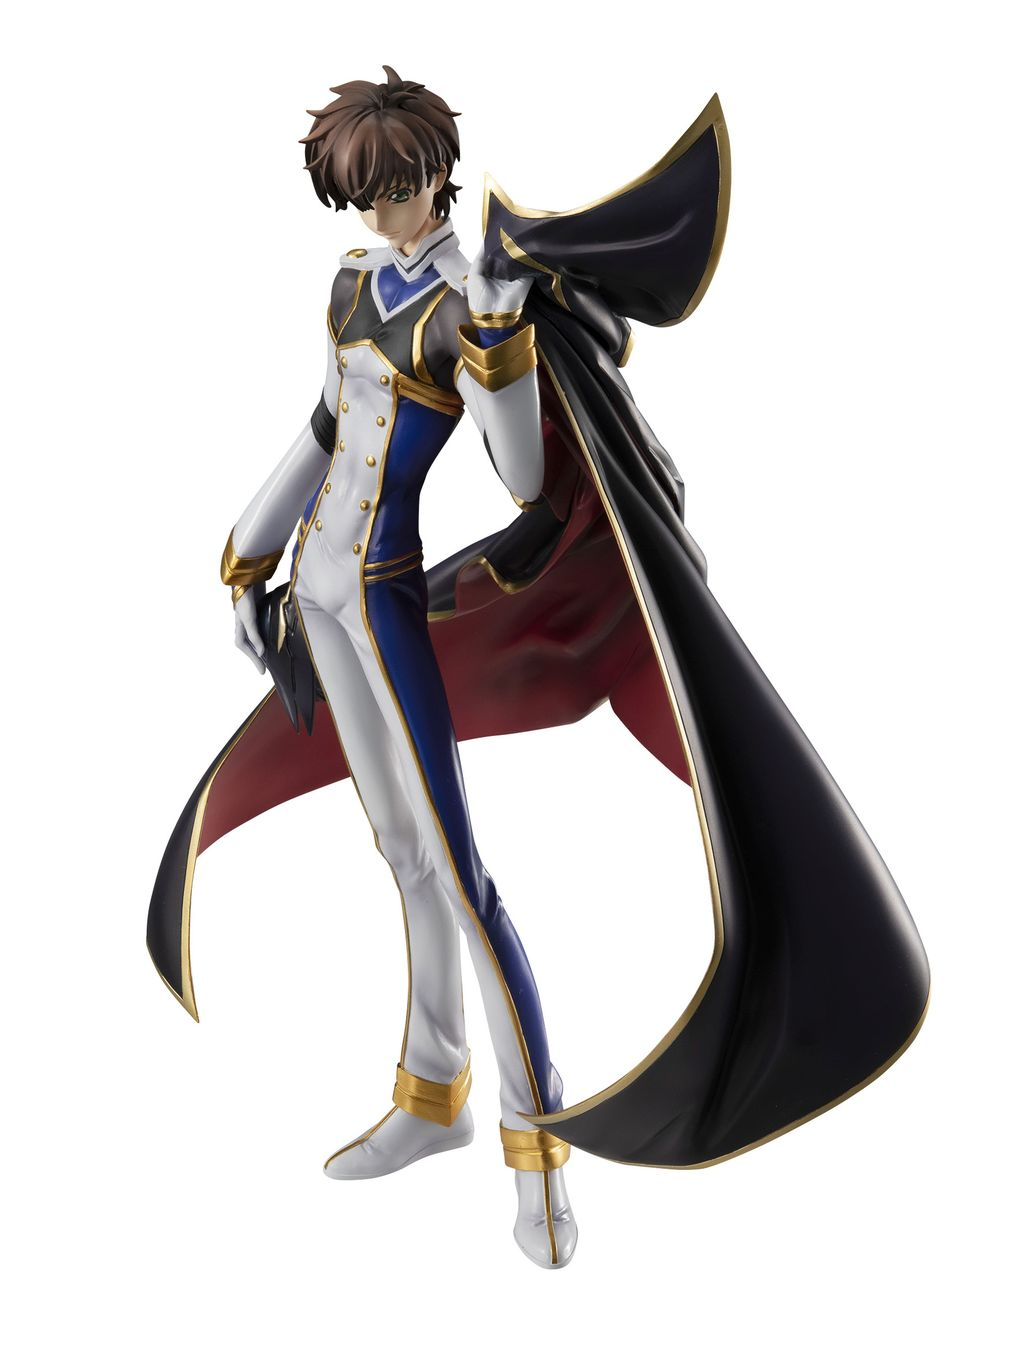 G.E.M. Series: Code Geass: Lelouch of the Re;surrection Suzaku Kururugi Pilot Ver. 2